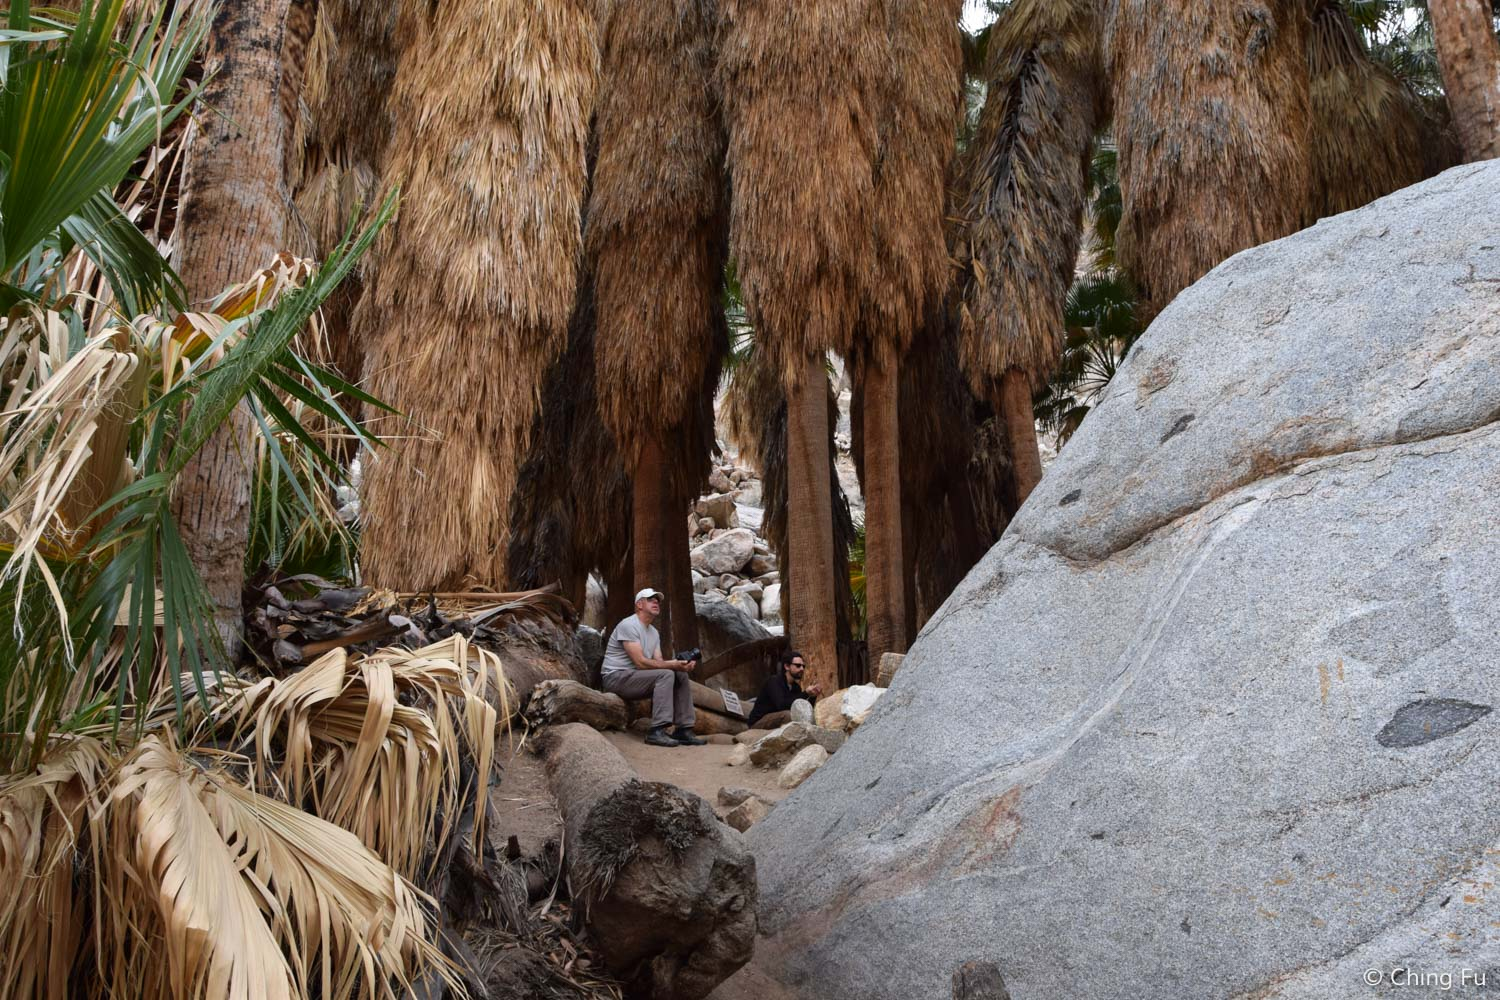 Hanging out under the grove of palm trees in the middle of desert and rocks.